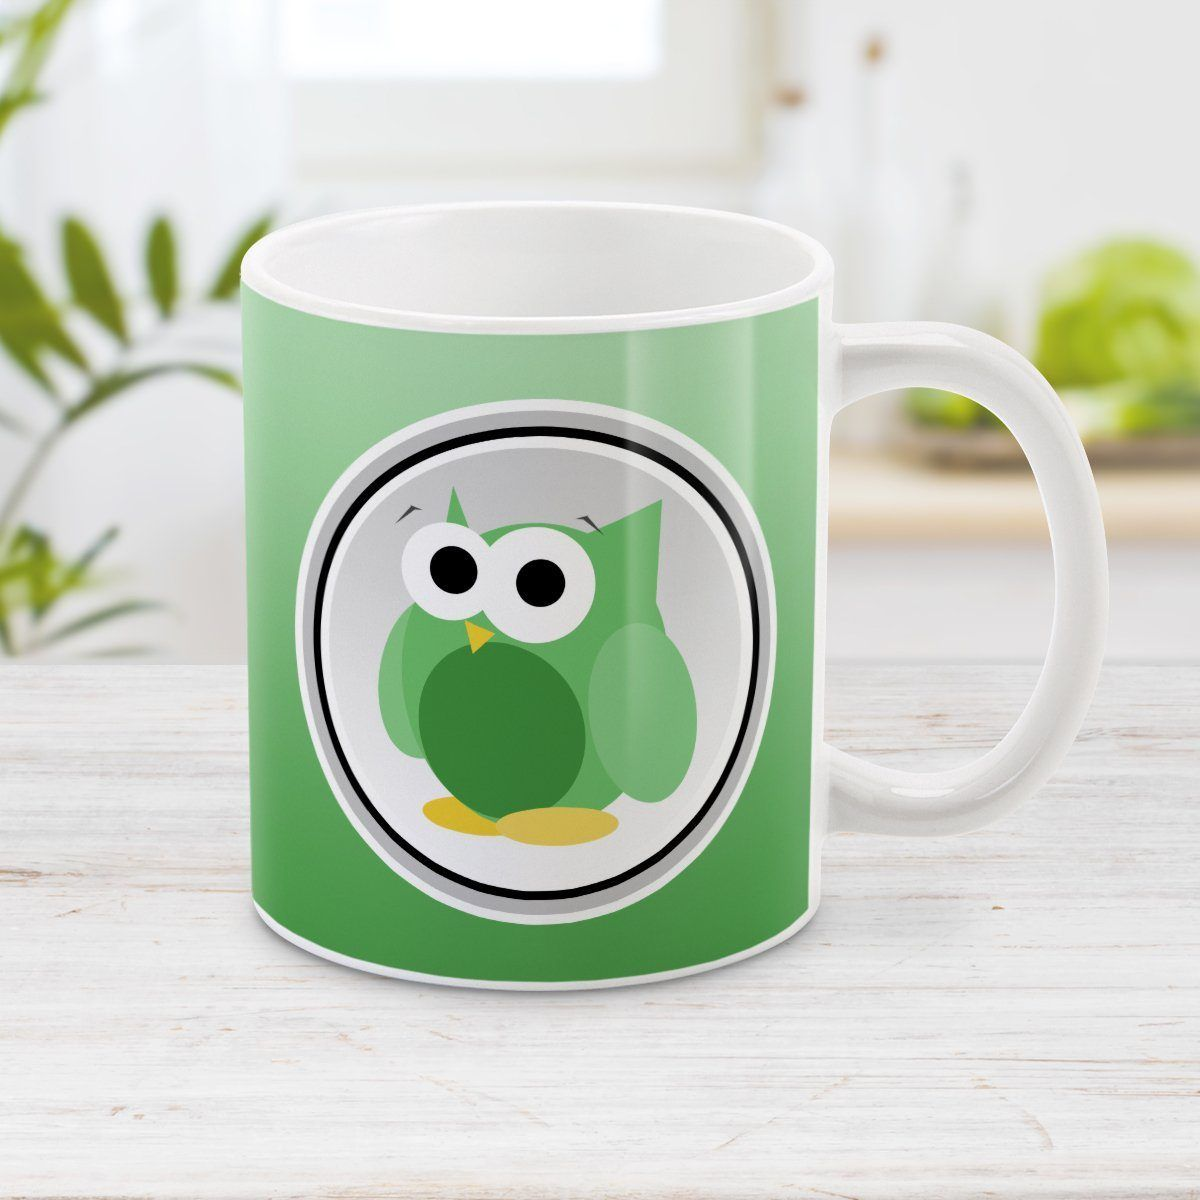 Funny Cute Green Owl Mug Owl mug, Mugs, Coffee mugs